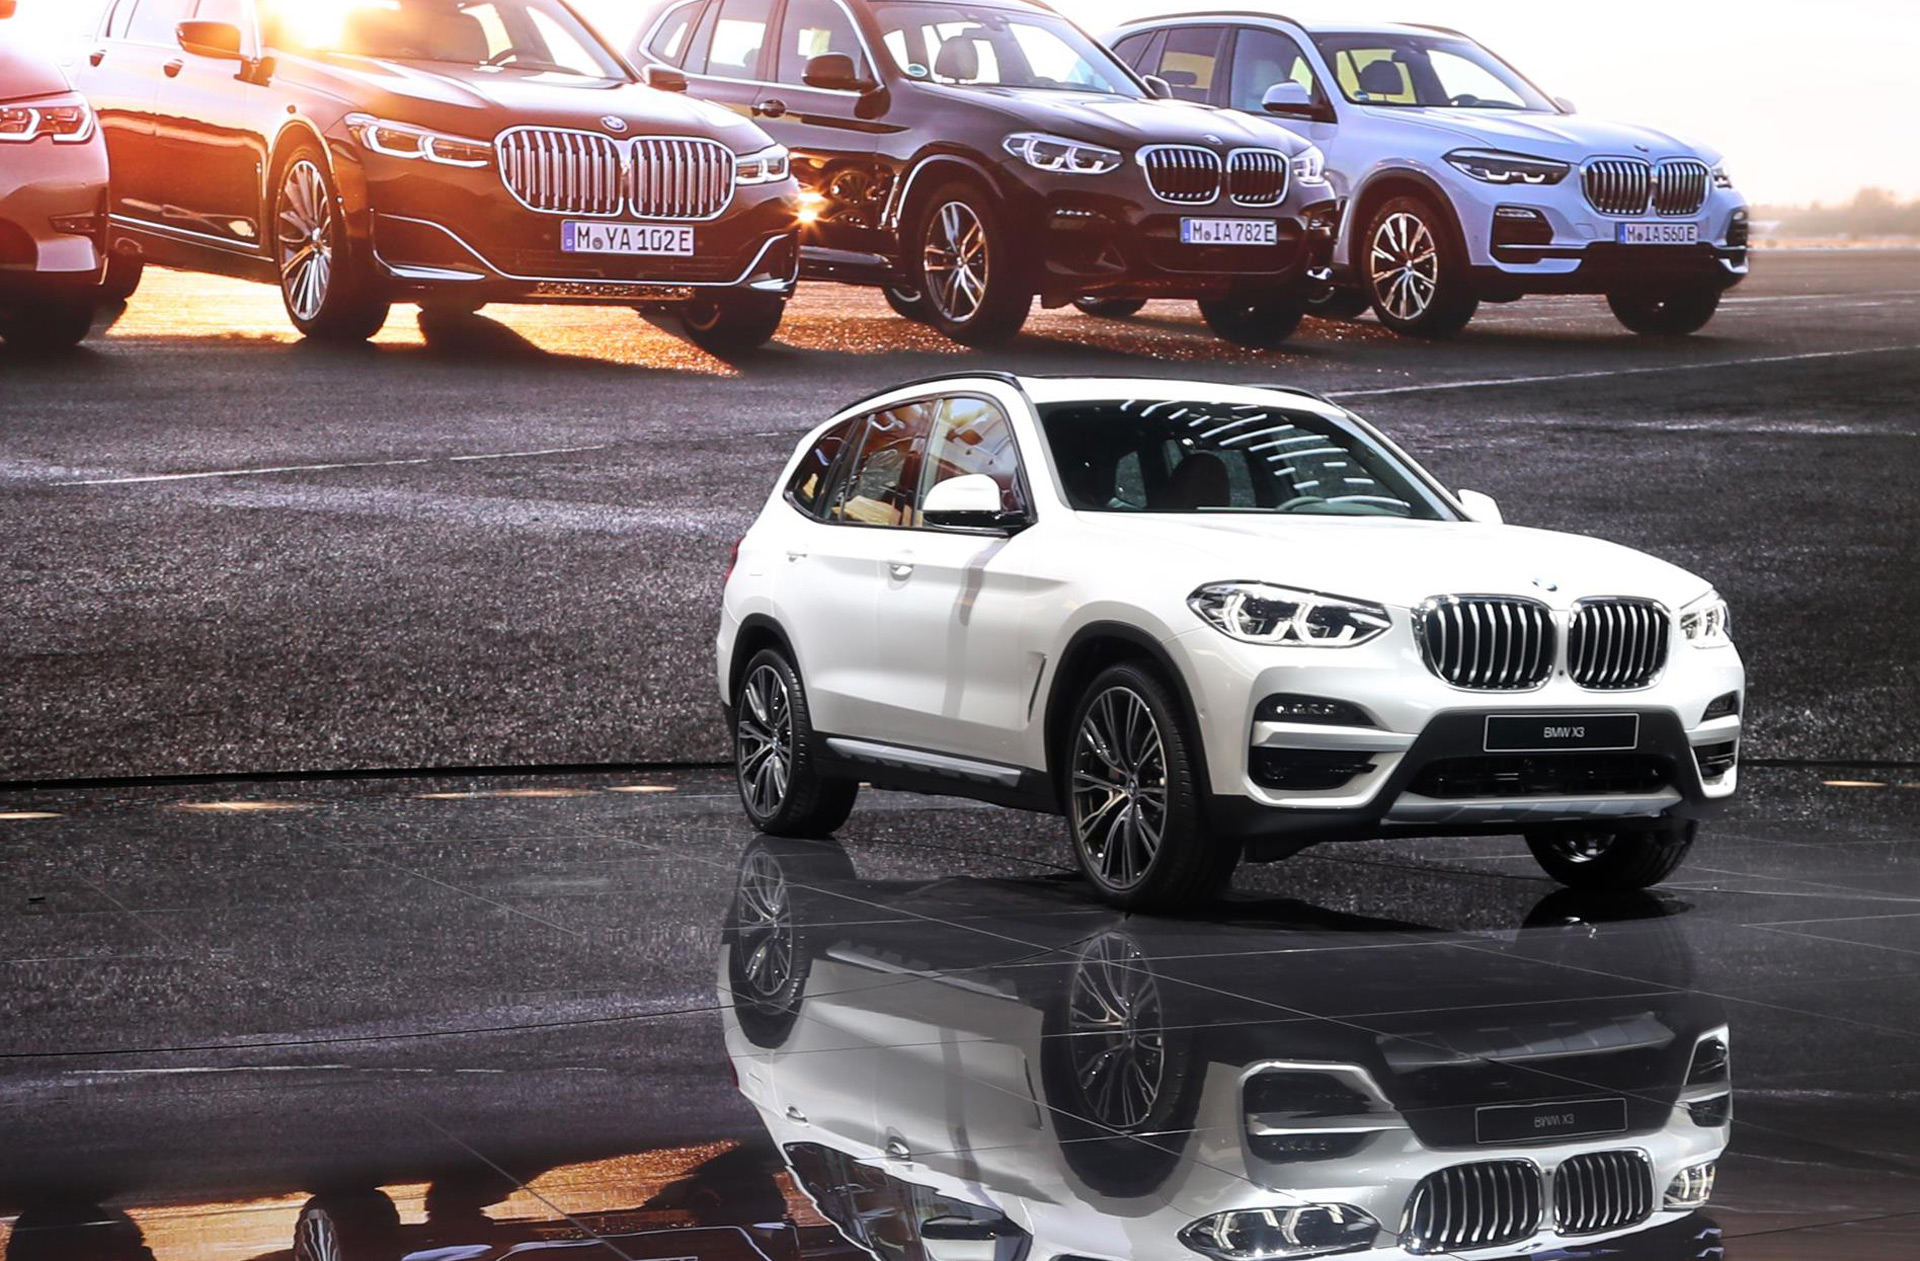 90 The Best 2020 BMW X3 Hybrid Price